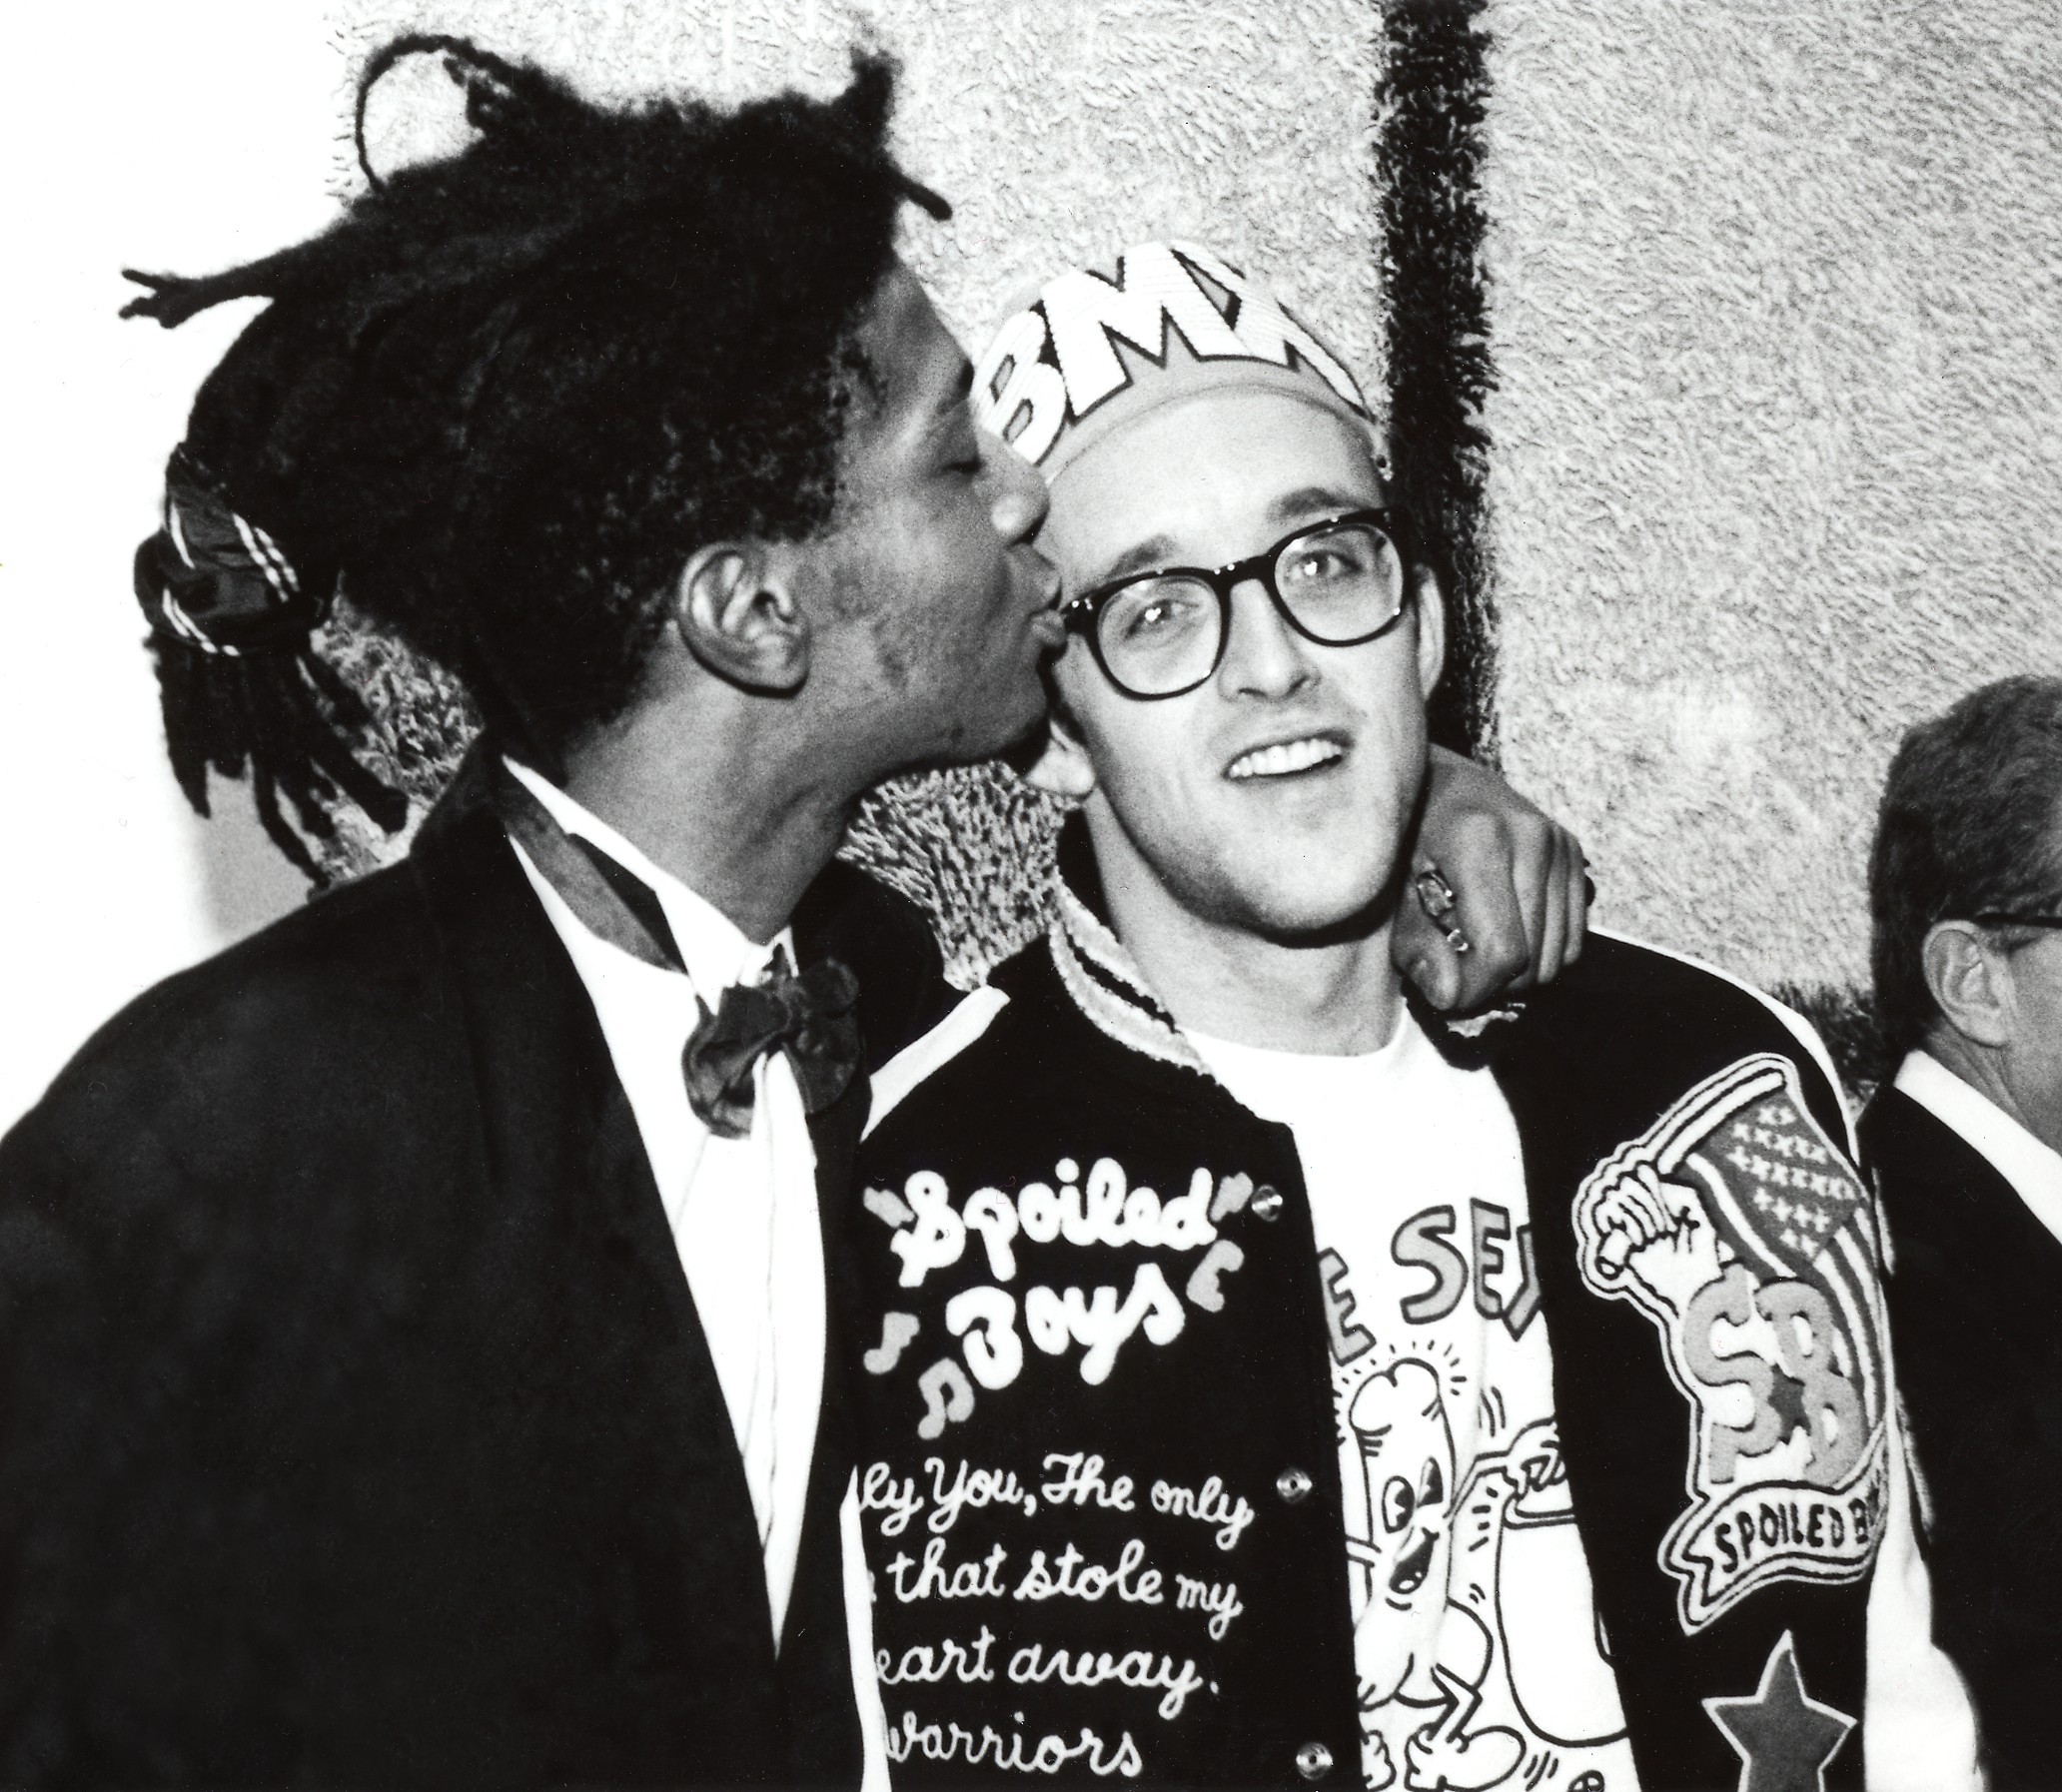 Jean-Michel Basquiat and Keith Haring. Photo by George Hirose.